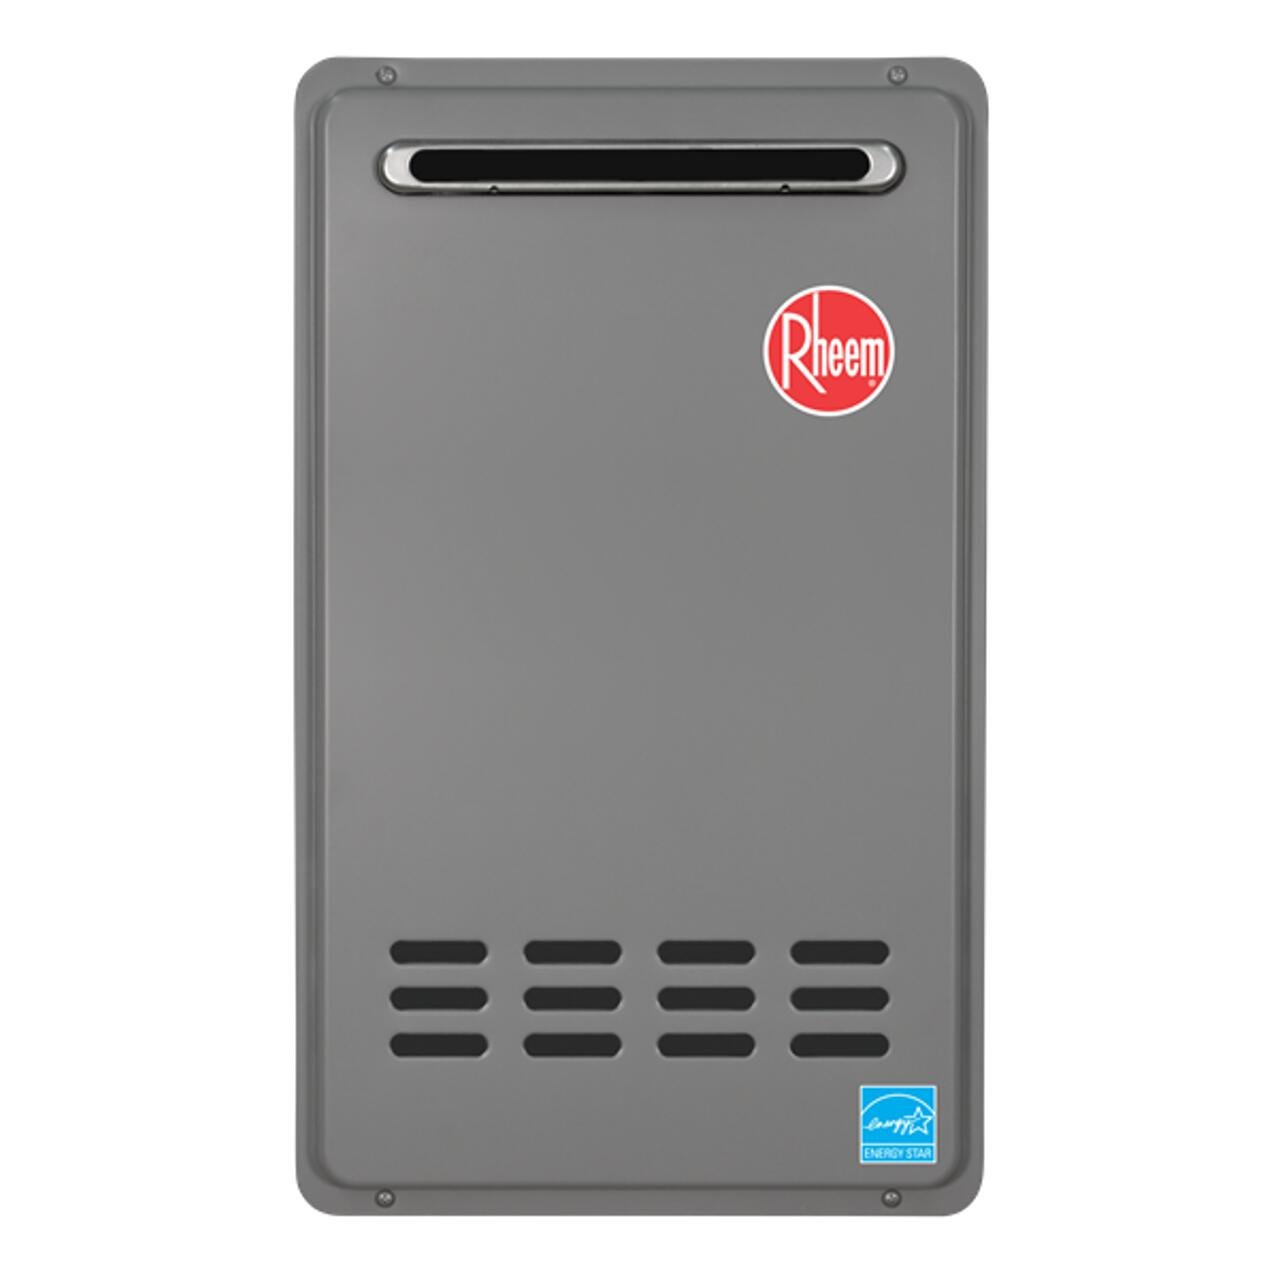 Rheem RTG-64XLN 6.4 GPM Outdoor Tankless Natural Gas Water Heater